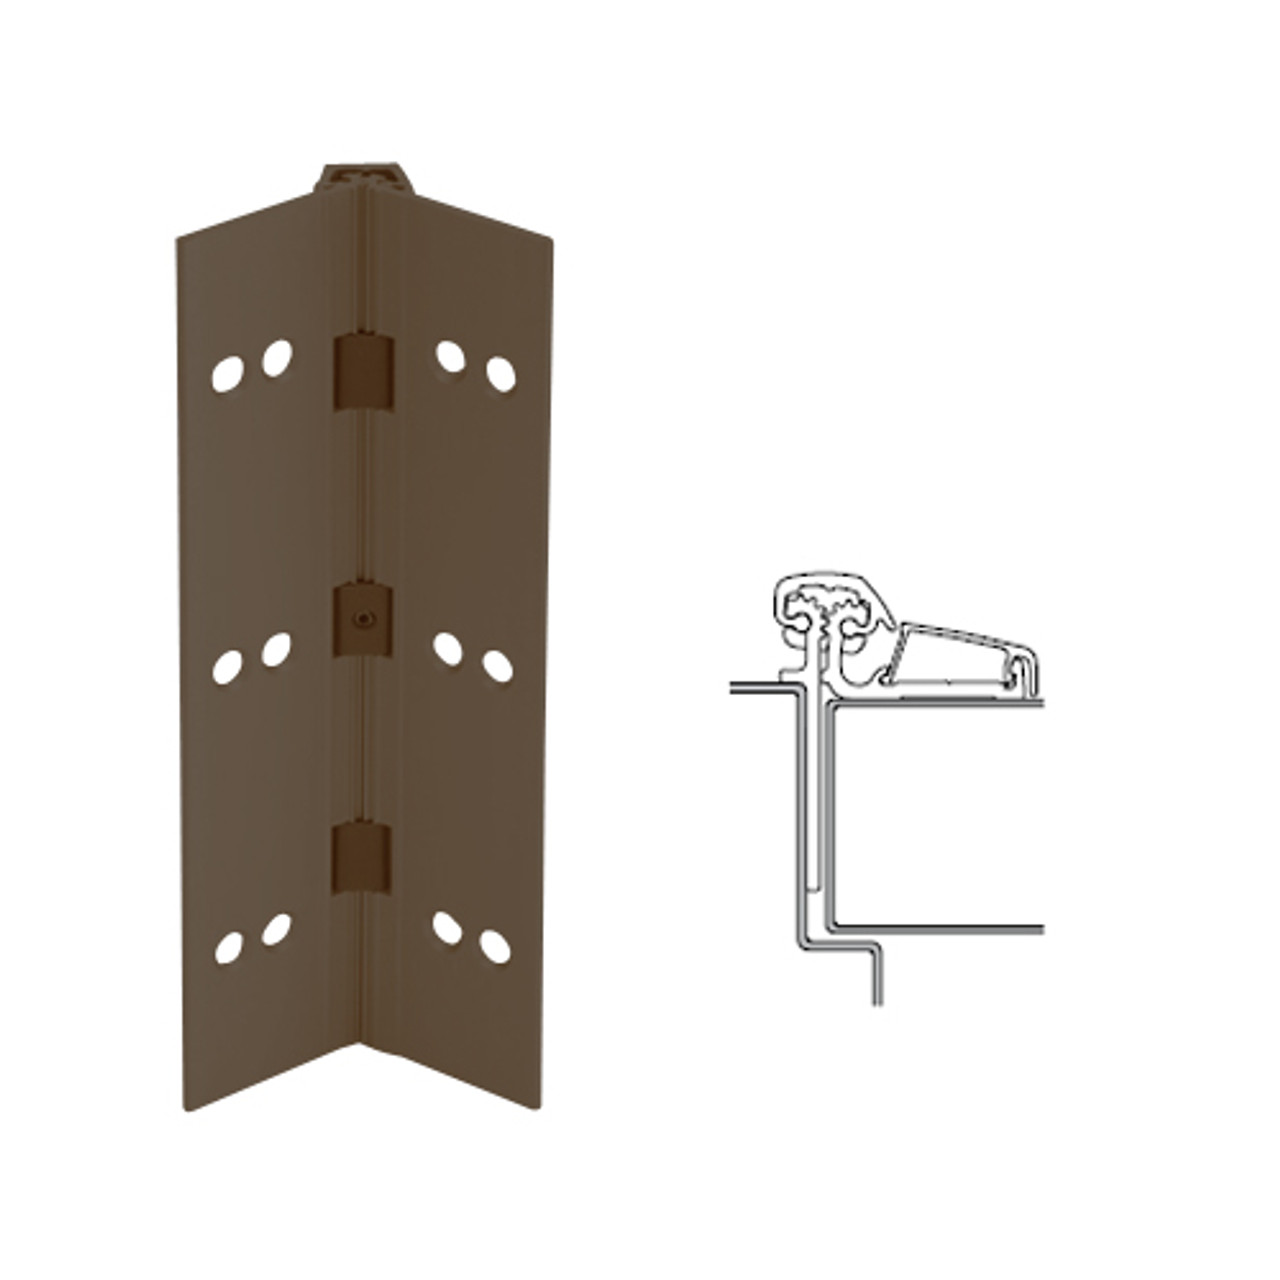 053XY-313AN-85-SECWDHM IVES Adjustable Half Surface Continuous Geared Hinges with Security Screws - Hex Pin Drive in Dark Bronze Anodized